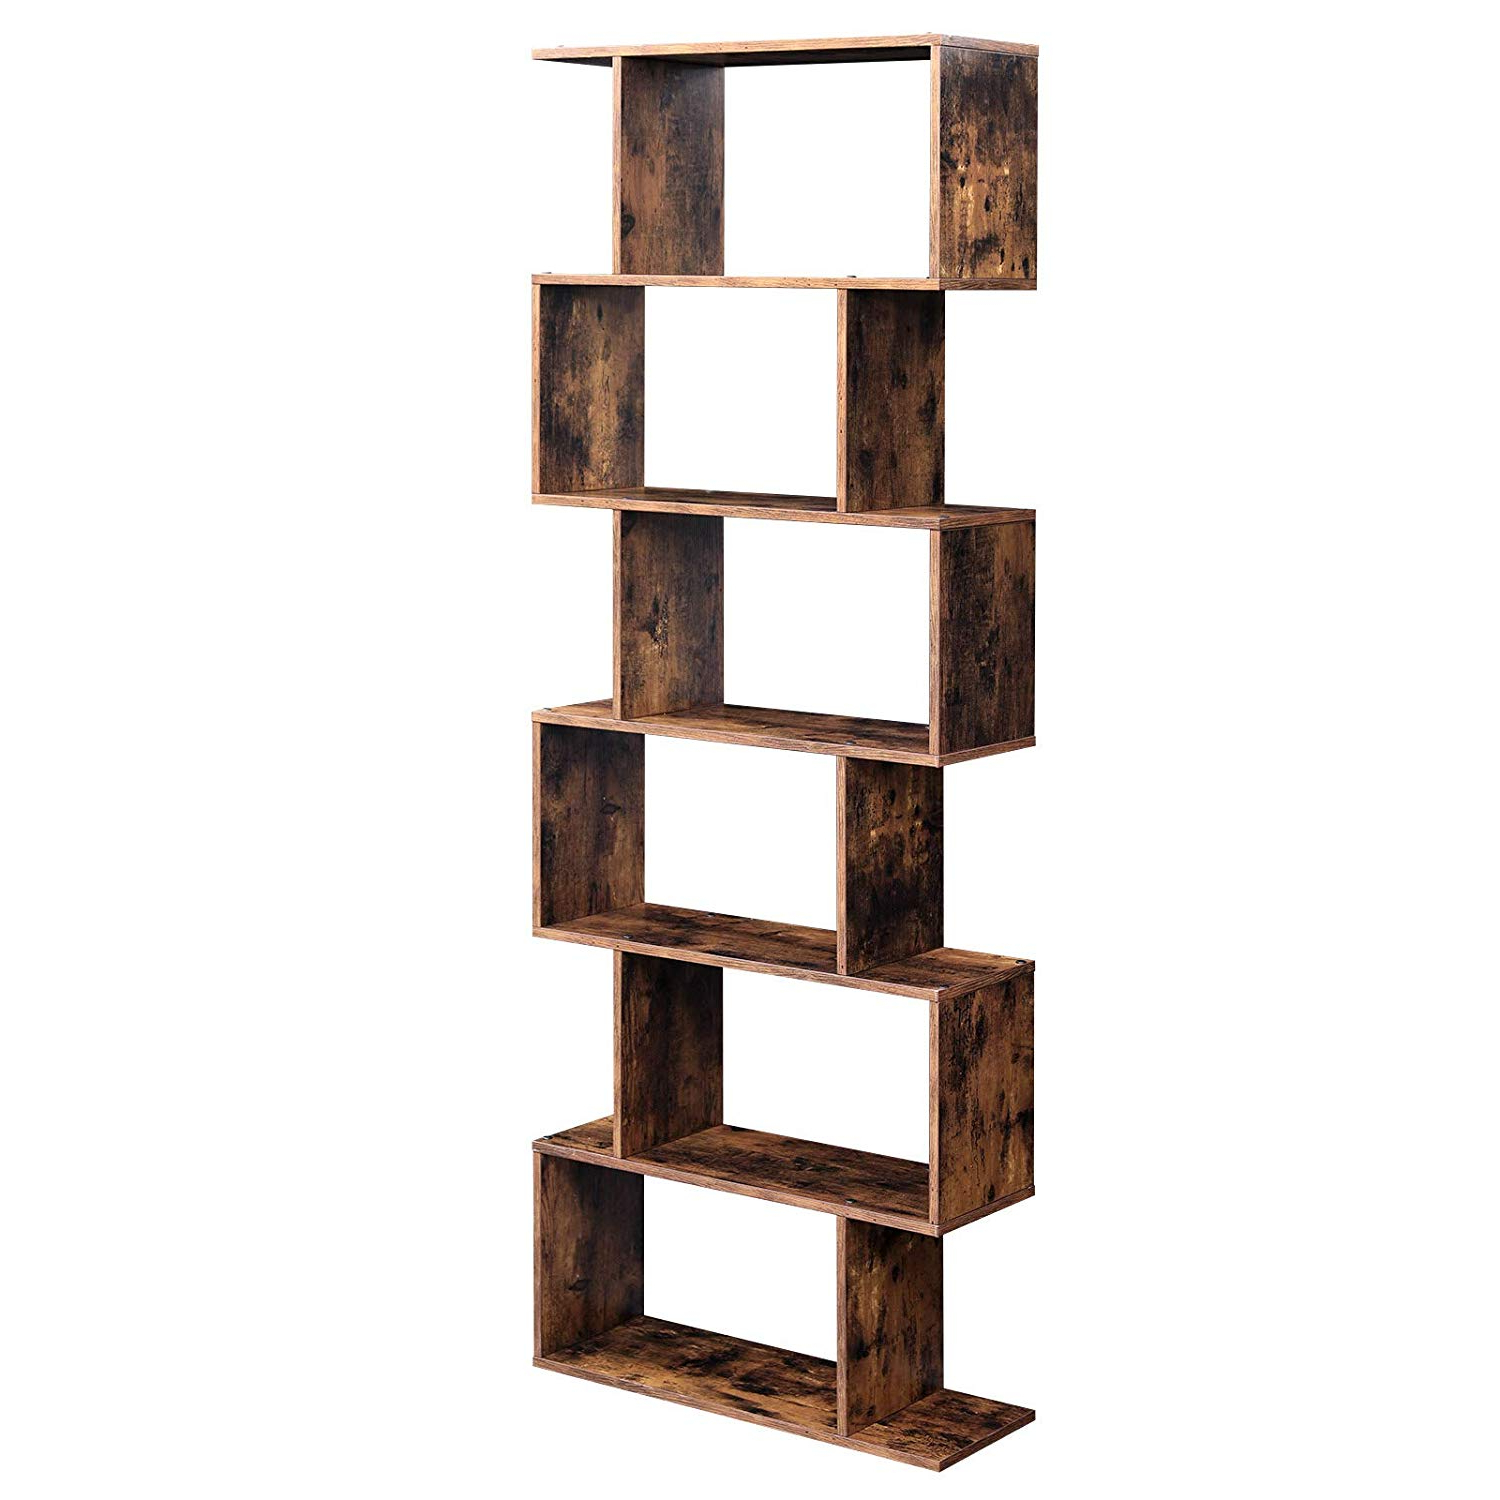 Widely Used Vasagle Wooden Bookcase, Cube Display Shelf And Room Divider With Decorative Storage Cube Bookcases (View 16 of 20)